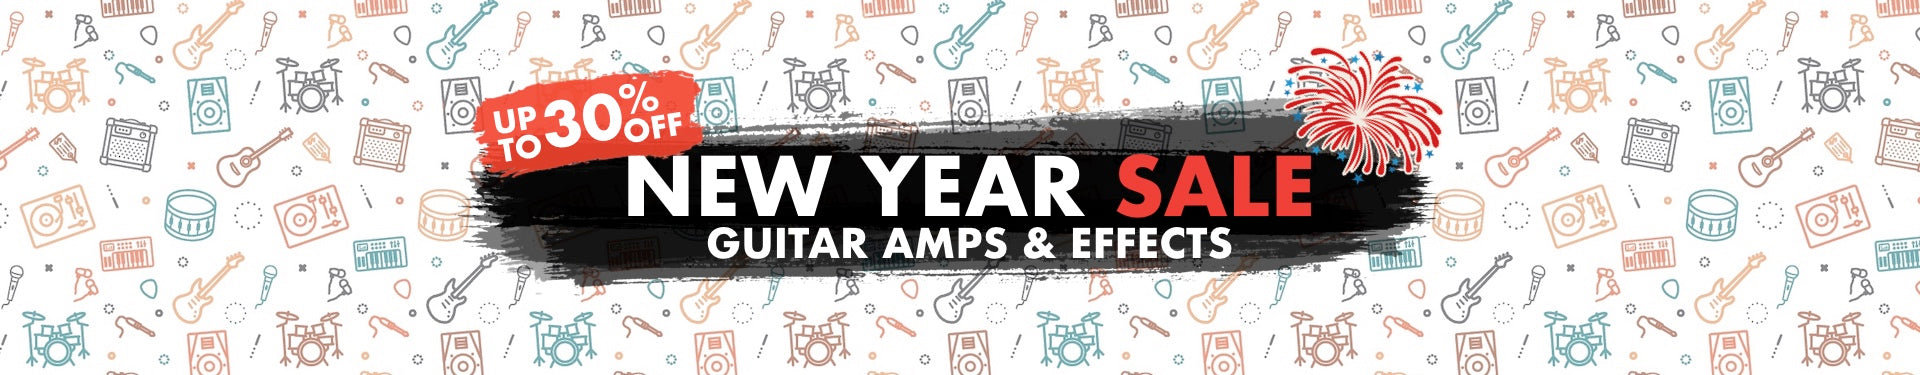 New Year Amps & Effects